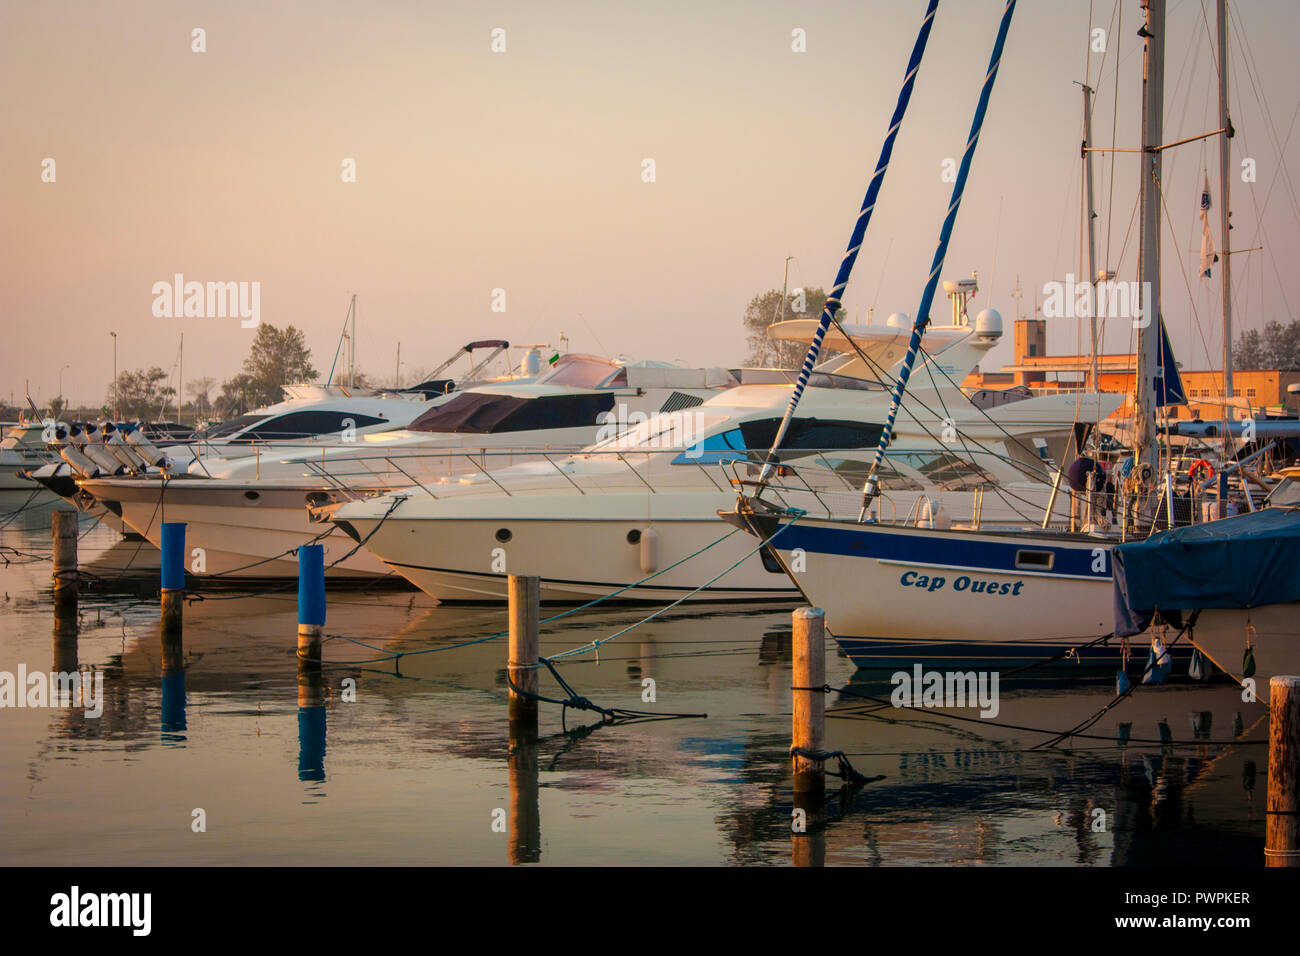 View of several boats moored on the great port of Albarella in Italy, illuminated by the warm colors of dawn - Stock Image